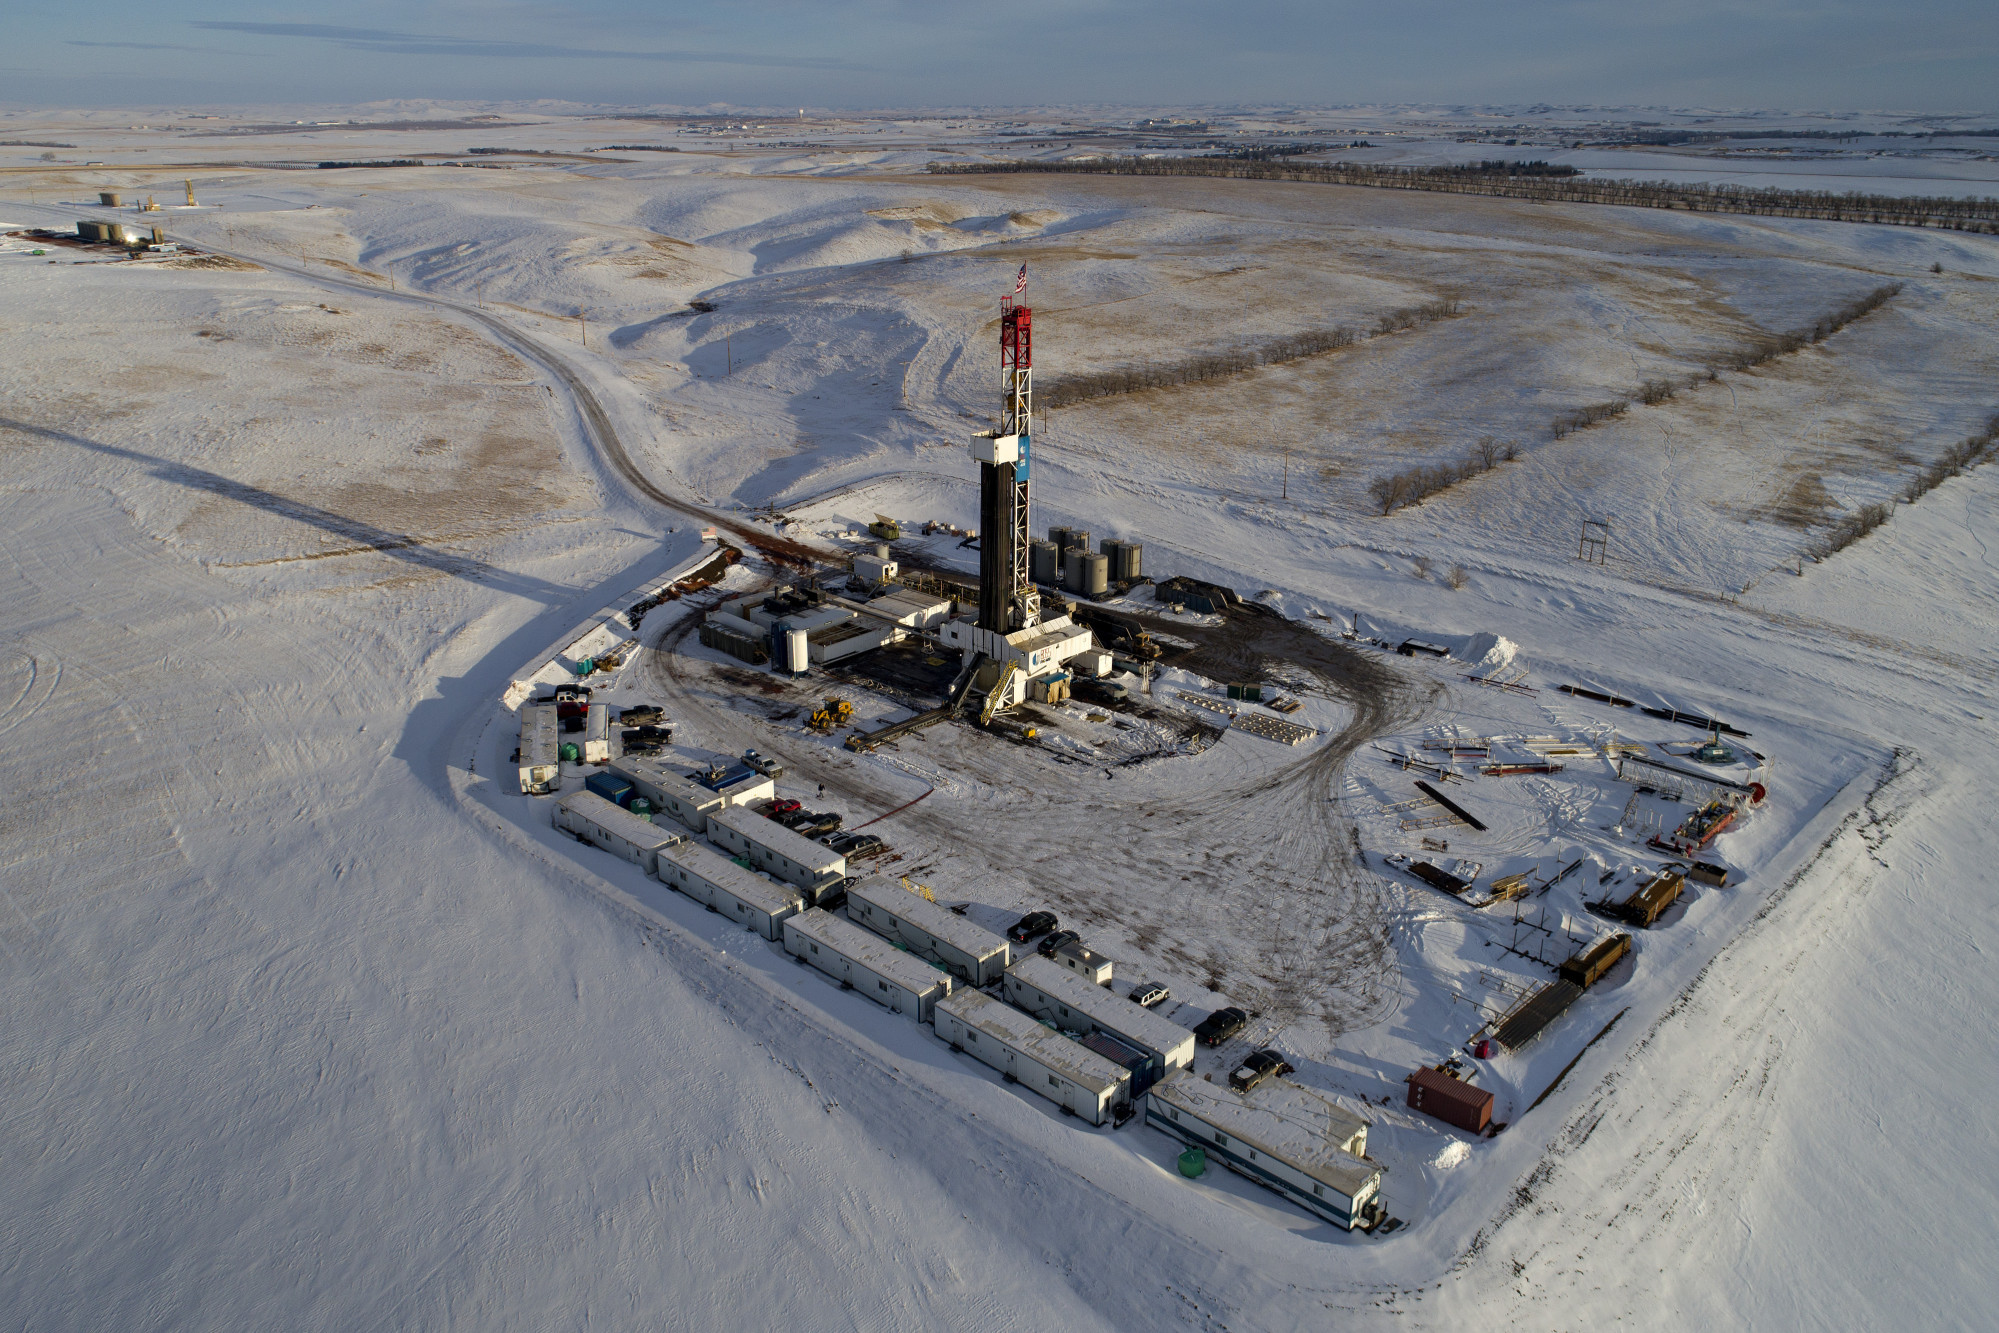 A Unit Drilling Co. rig stands in the Bakken Formation in this aerial photograph outside Watford City, North Dakota, U.S., on Friday, March 9, 2018. When oil sold for $100 a barrel, many oil towns dotting the nation's shale basins grew faster than its infrastructure and services could handle. Since 2015, as oil prices floundered, Williston has added new roads, including a truck route around the city, two new fire stations, expanded the landfill, opened a new waste water treatment plant and started work on an airport relocation and expansion project. Photographer: Daniel Acker/Bloomberg